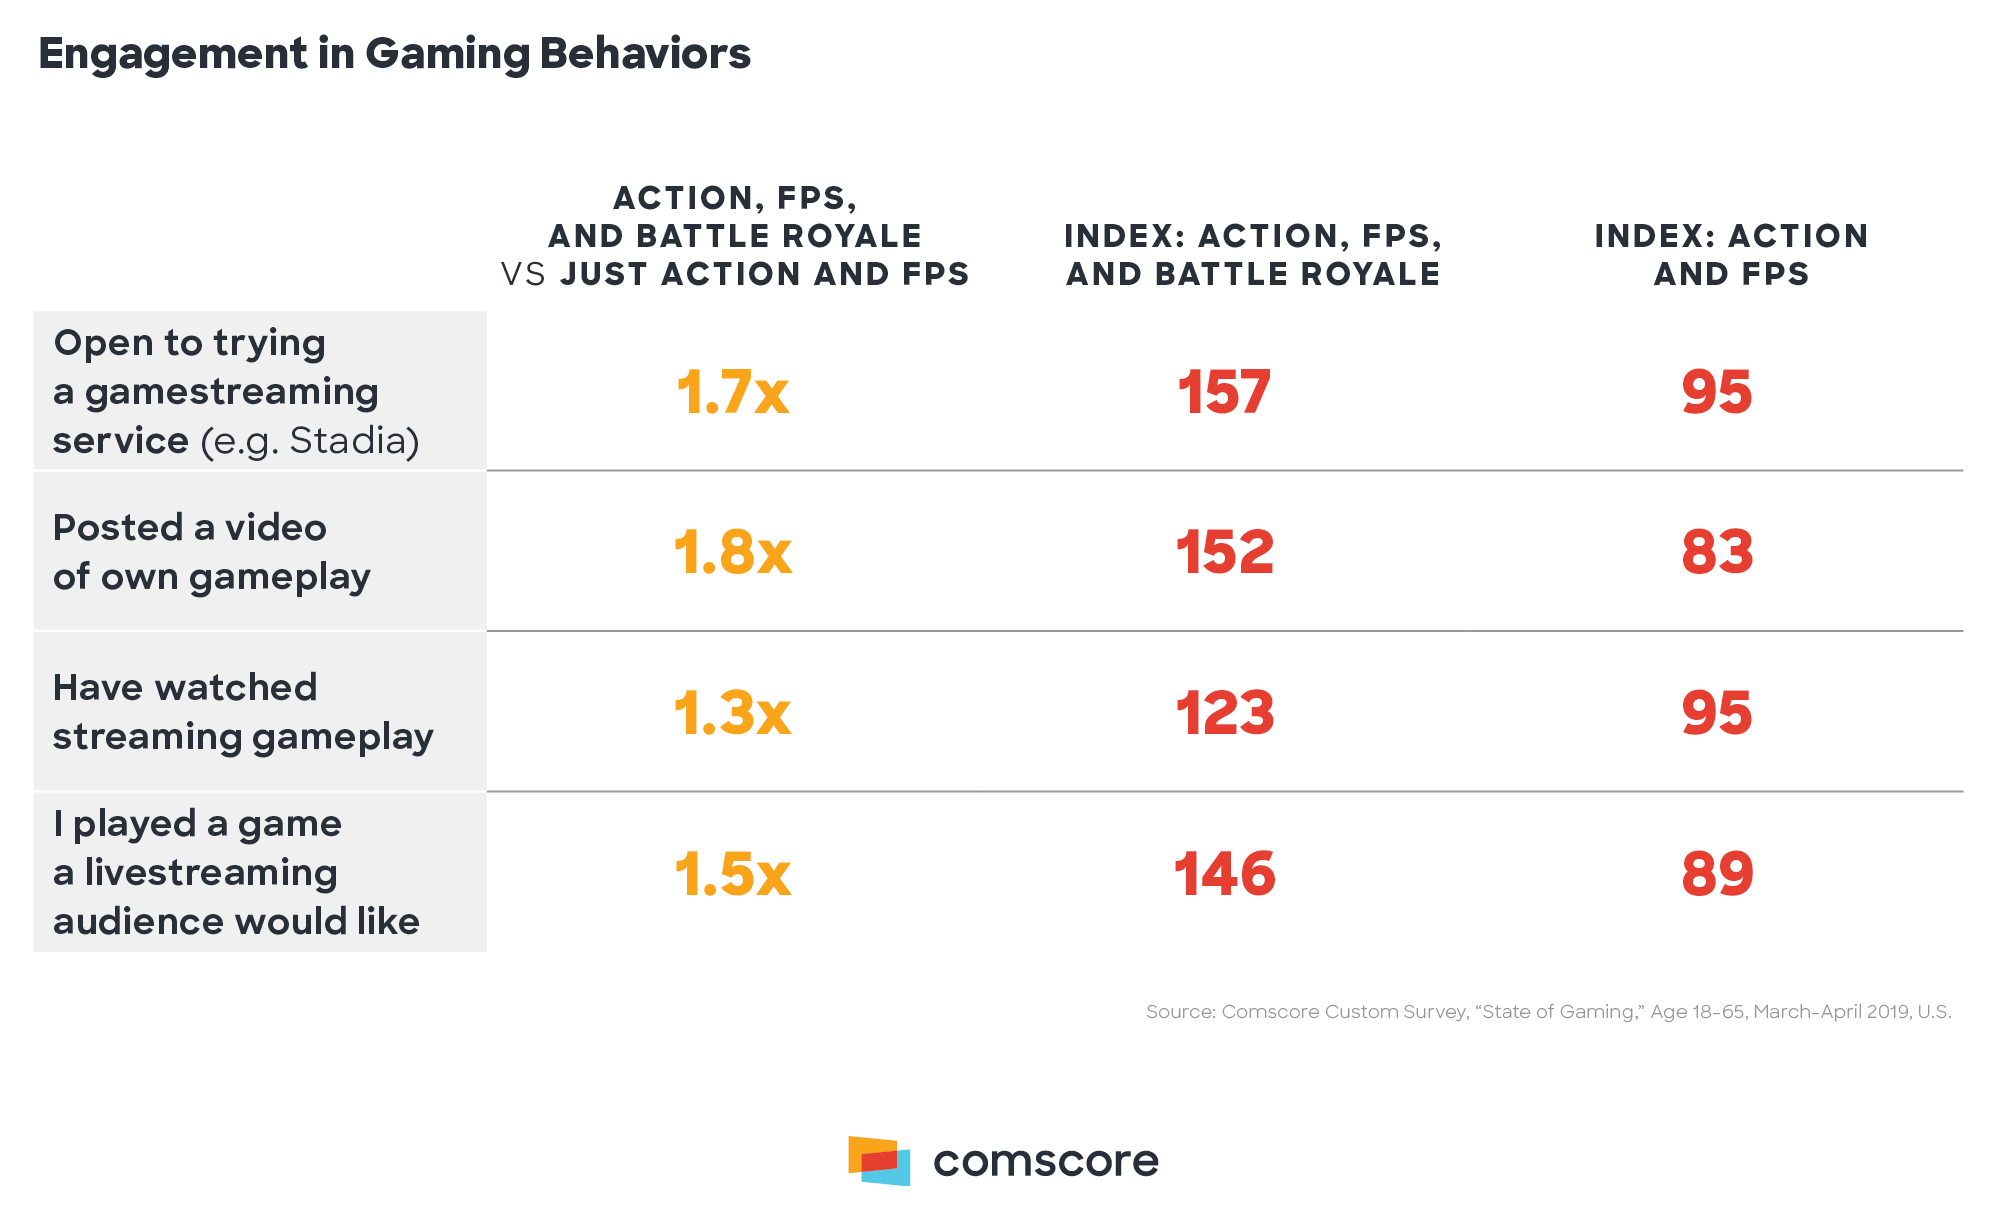 Engagement in Gaming Behaviors